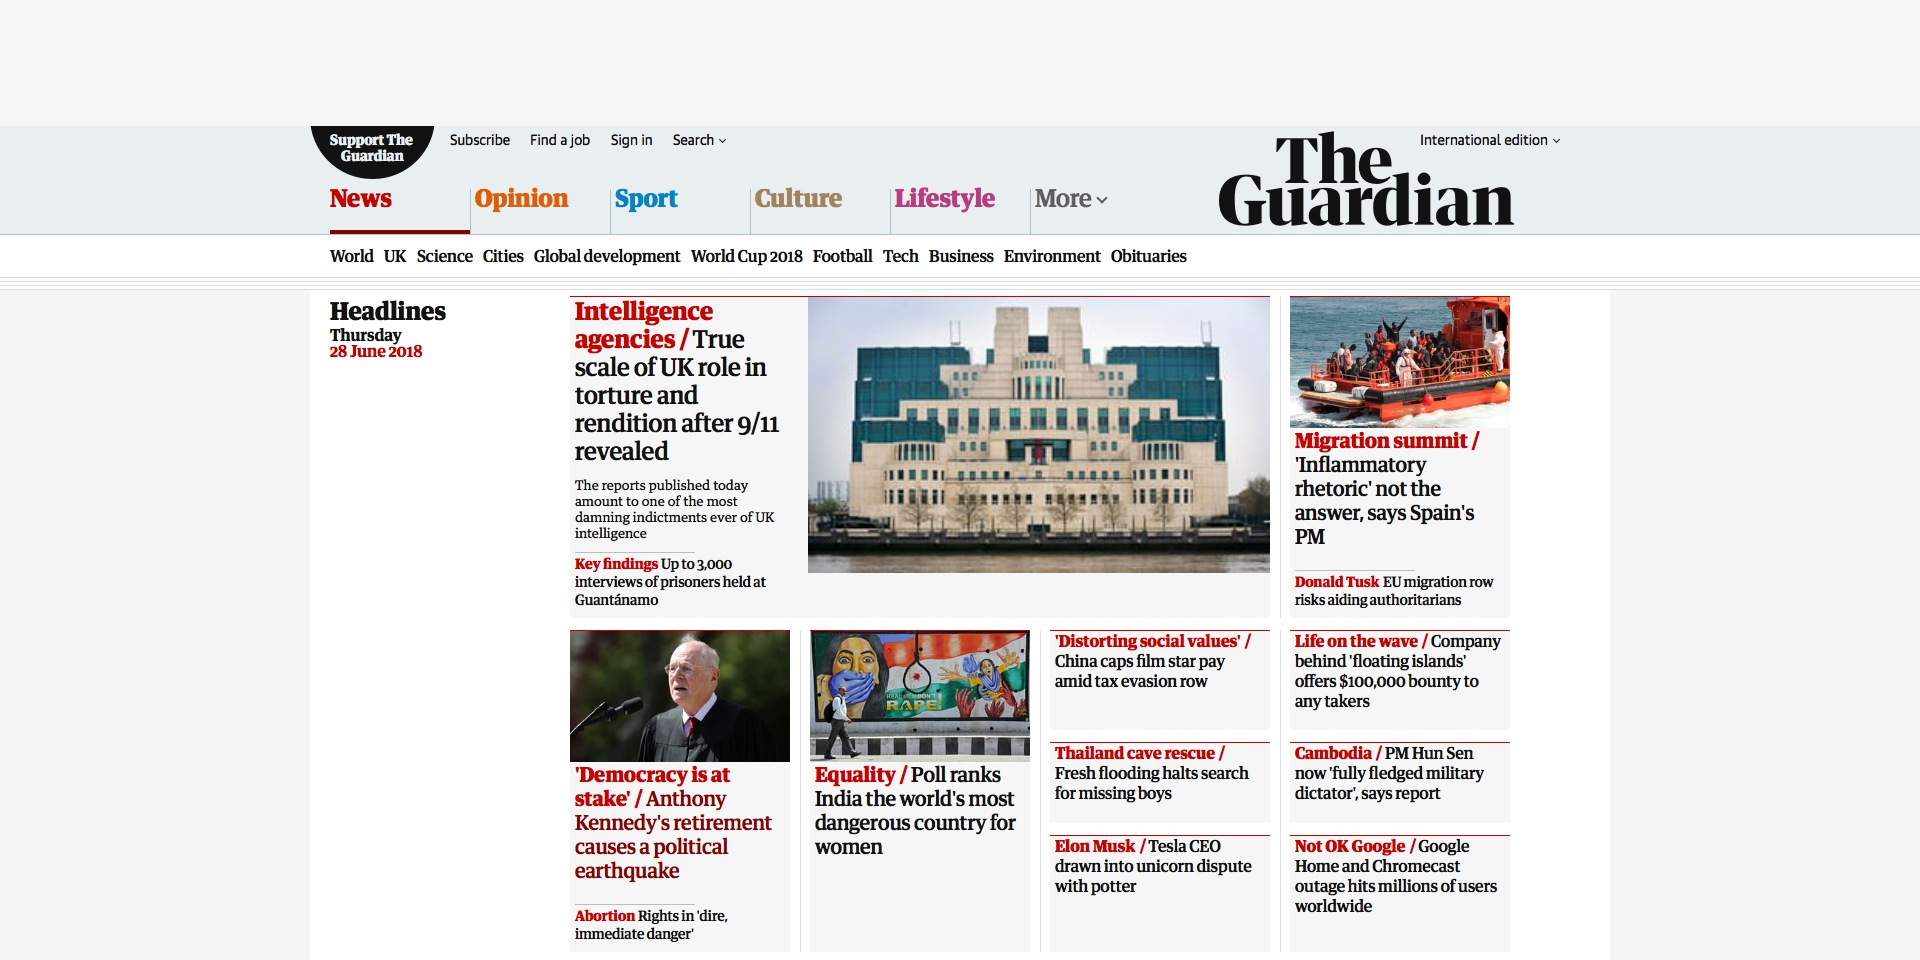 The Guardian (international edition)